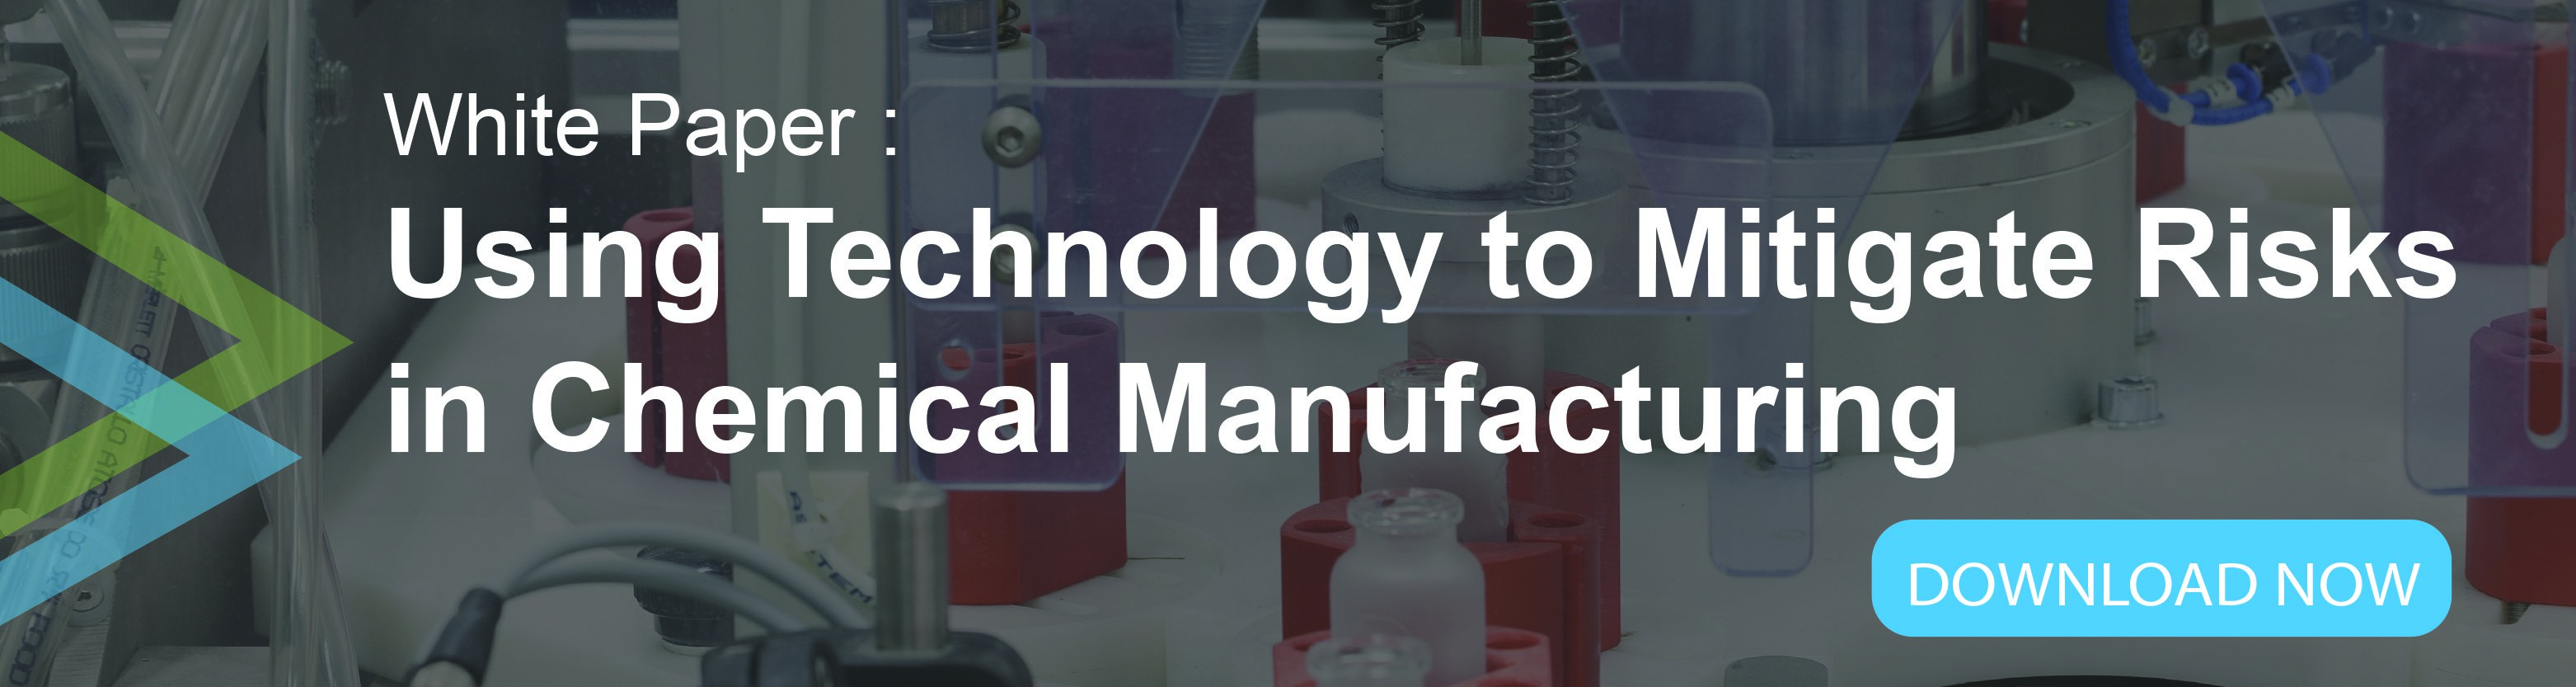 Using Technology to Mitigate Risks in Chemical Manufacturing